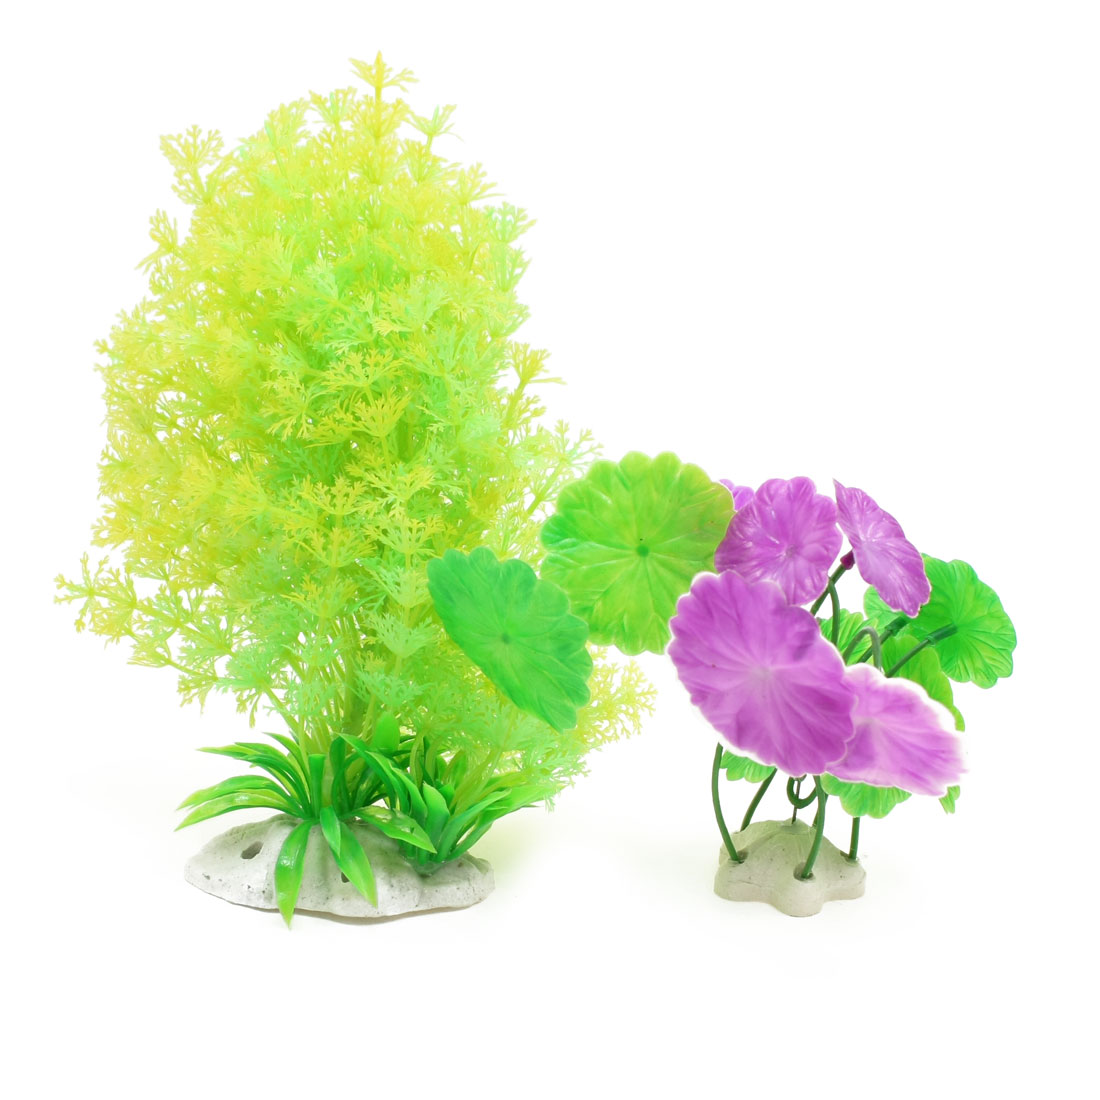 Fish-Tank-5-9-Yellow-Purple-Plastic-Round-Leaves-Aquatic-Plants-2-Pcs